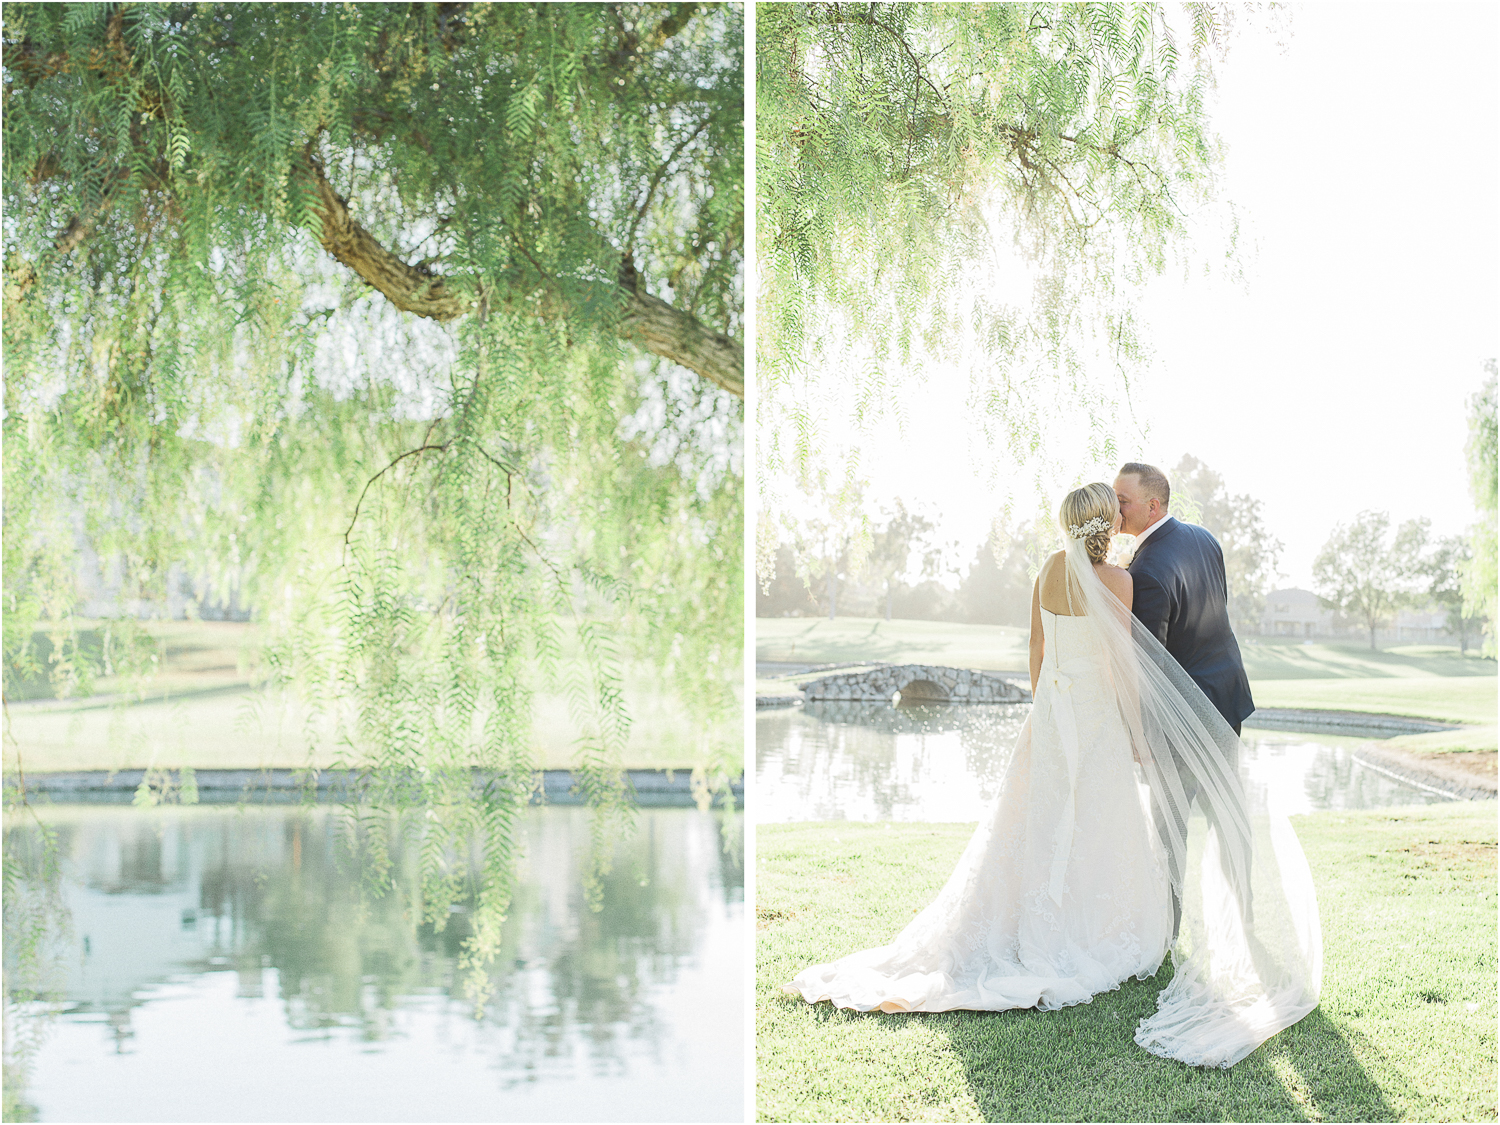 Alta Vista Country Club's spacious green golf course was such a beautiful backdrop to showcase the couples portraits.